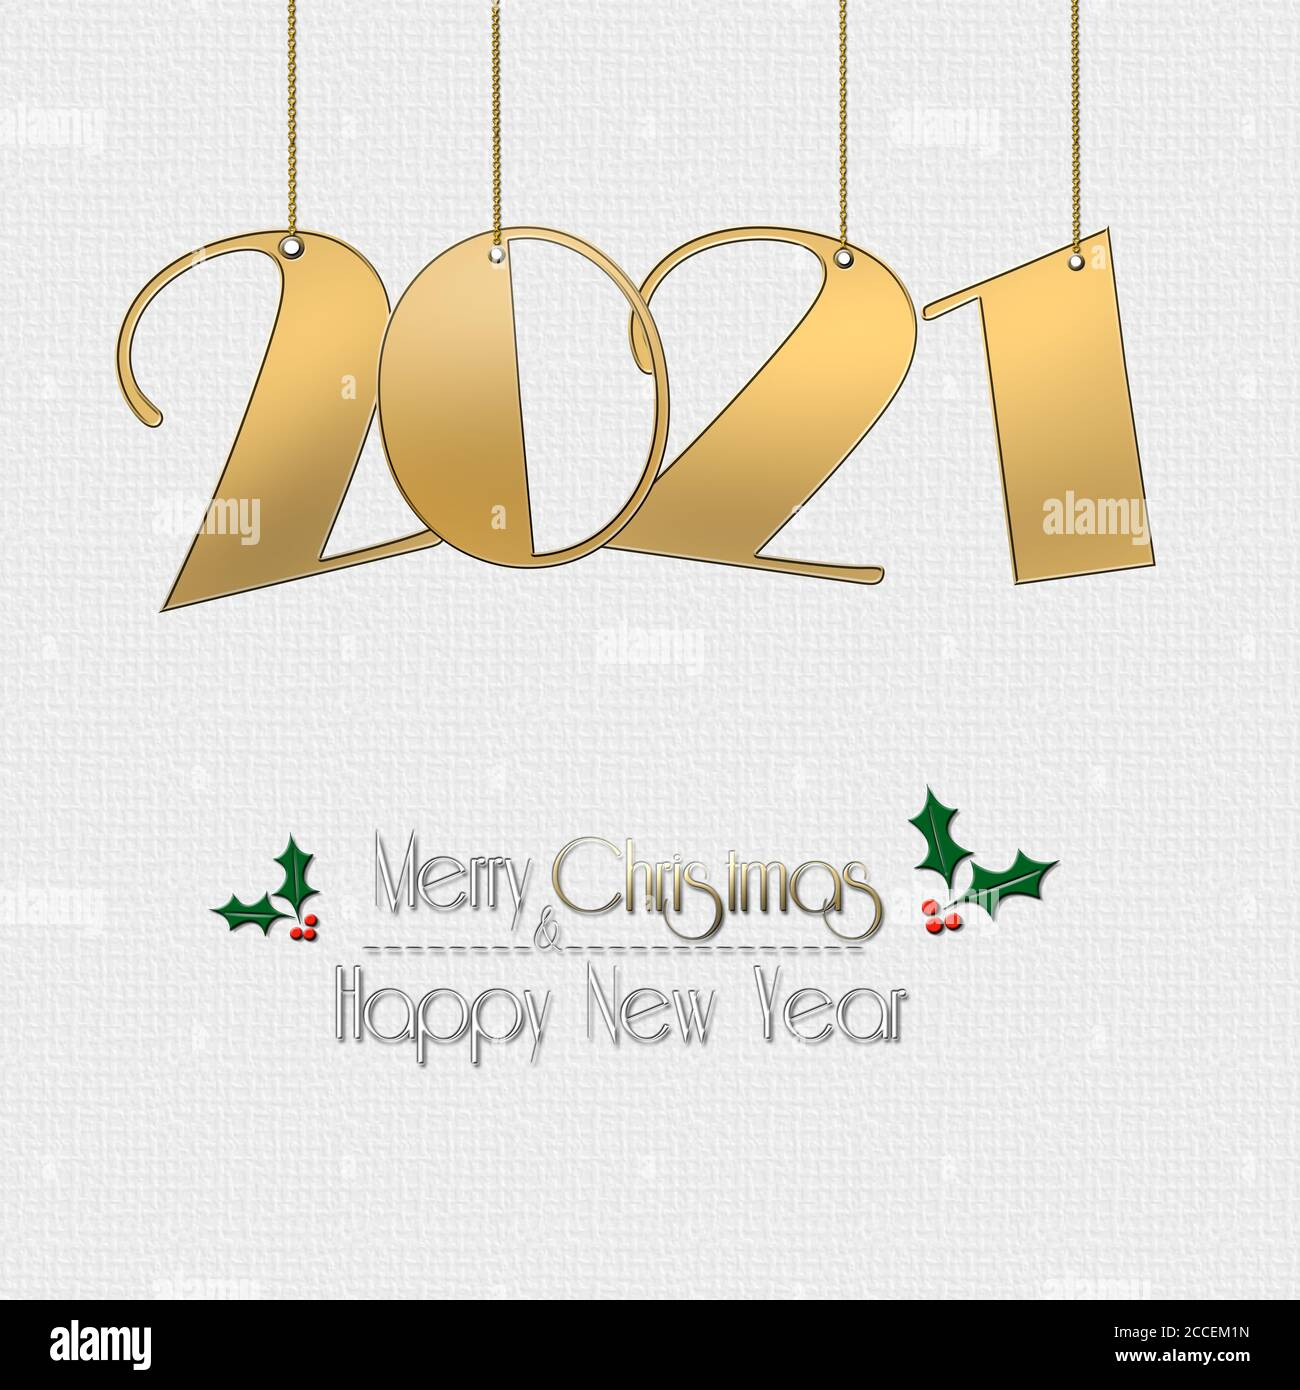 Hanging Banner Images Merry Christmas & Happy New Year 2021 Minimalist Happy New 2021 Year And Christmas Design With Hanging Gold 2021 Digit On White Background Text Merry Christmas Happy New Year With Holly Leaves 3d Illustration Stock Photo Alamy